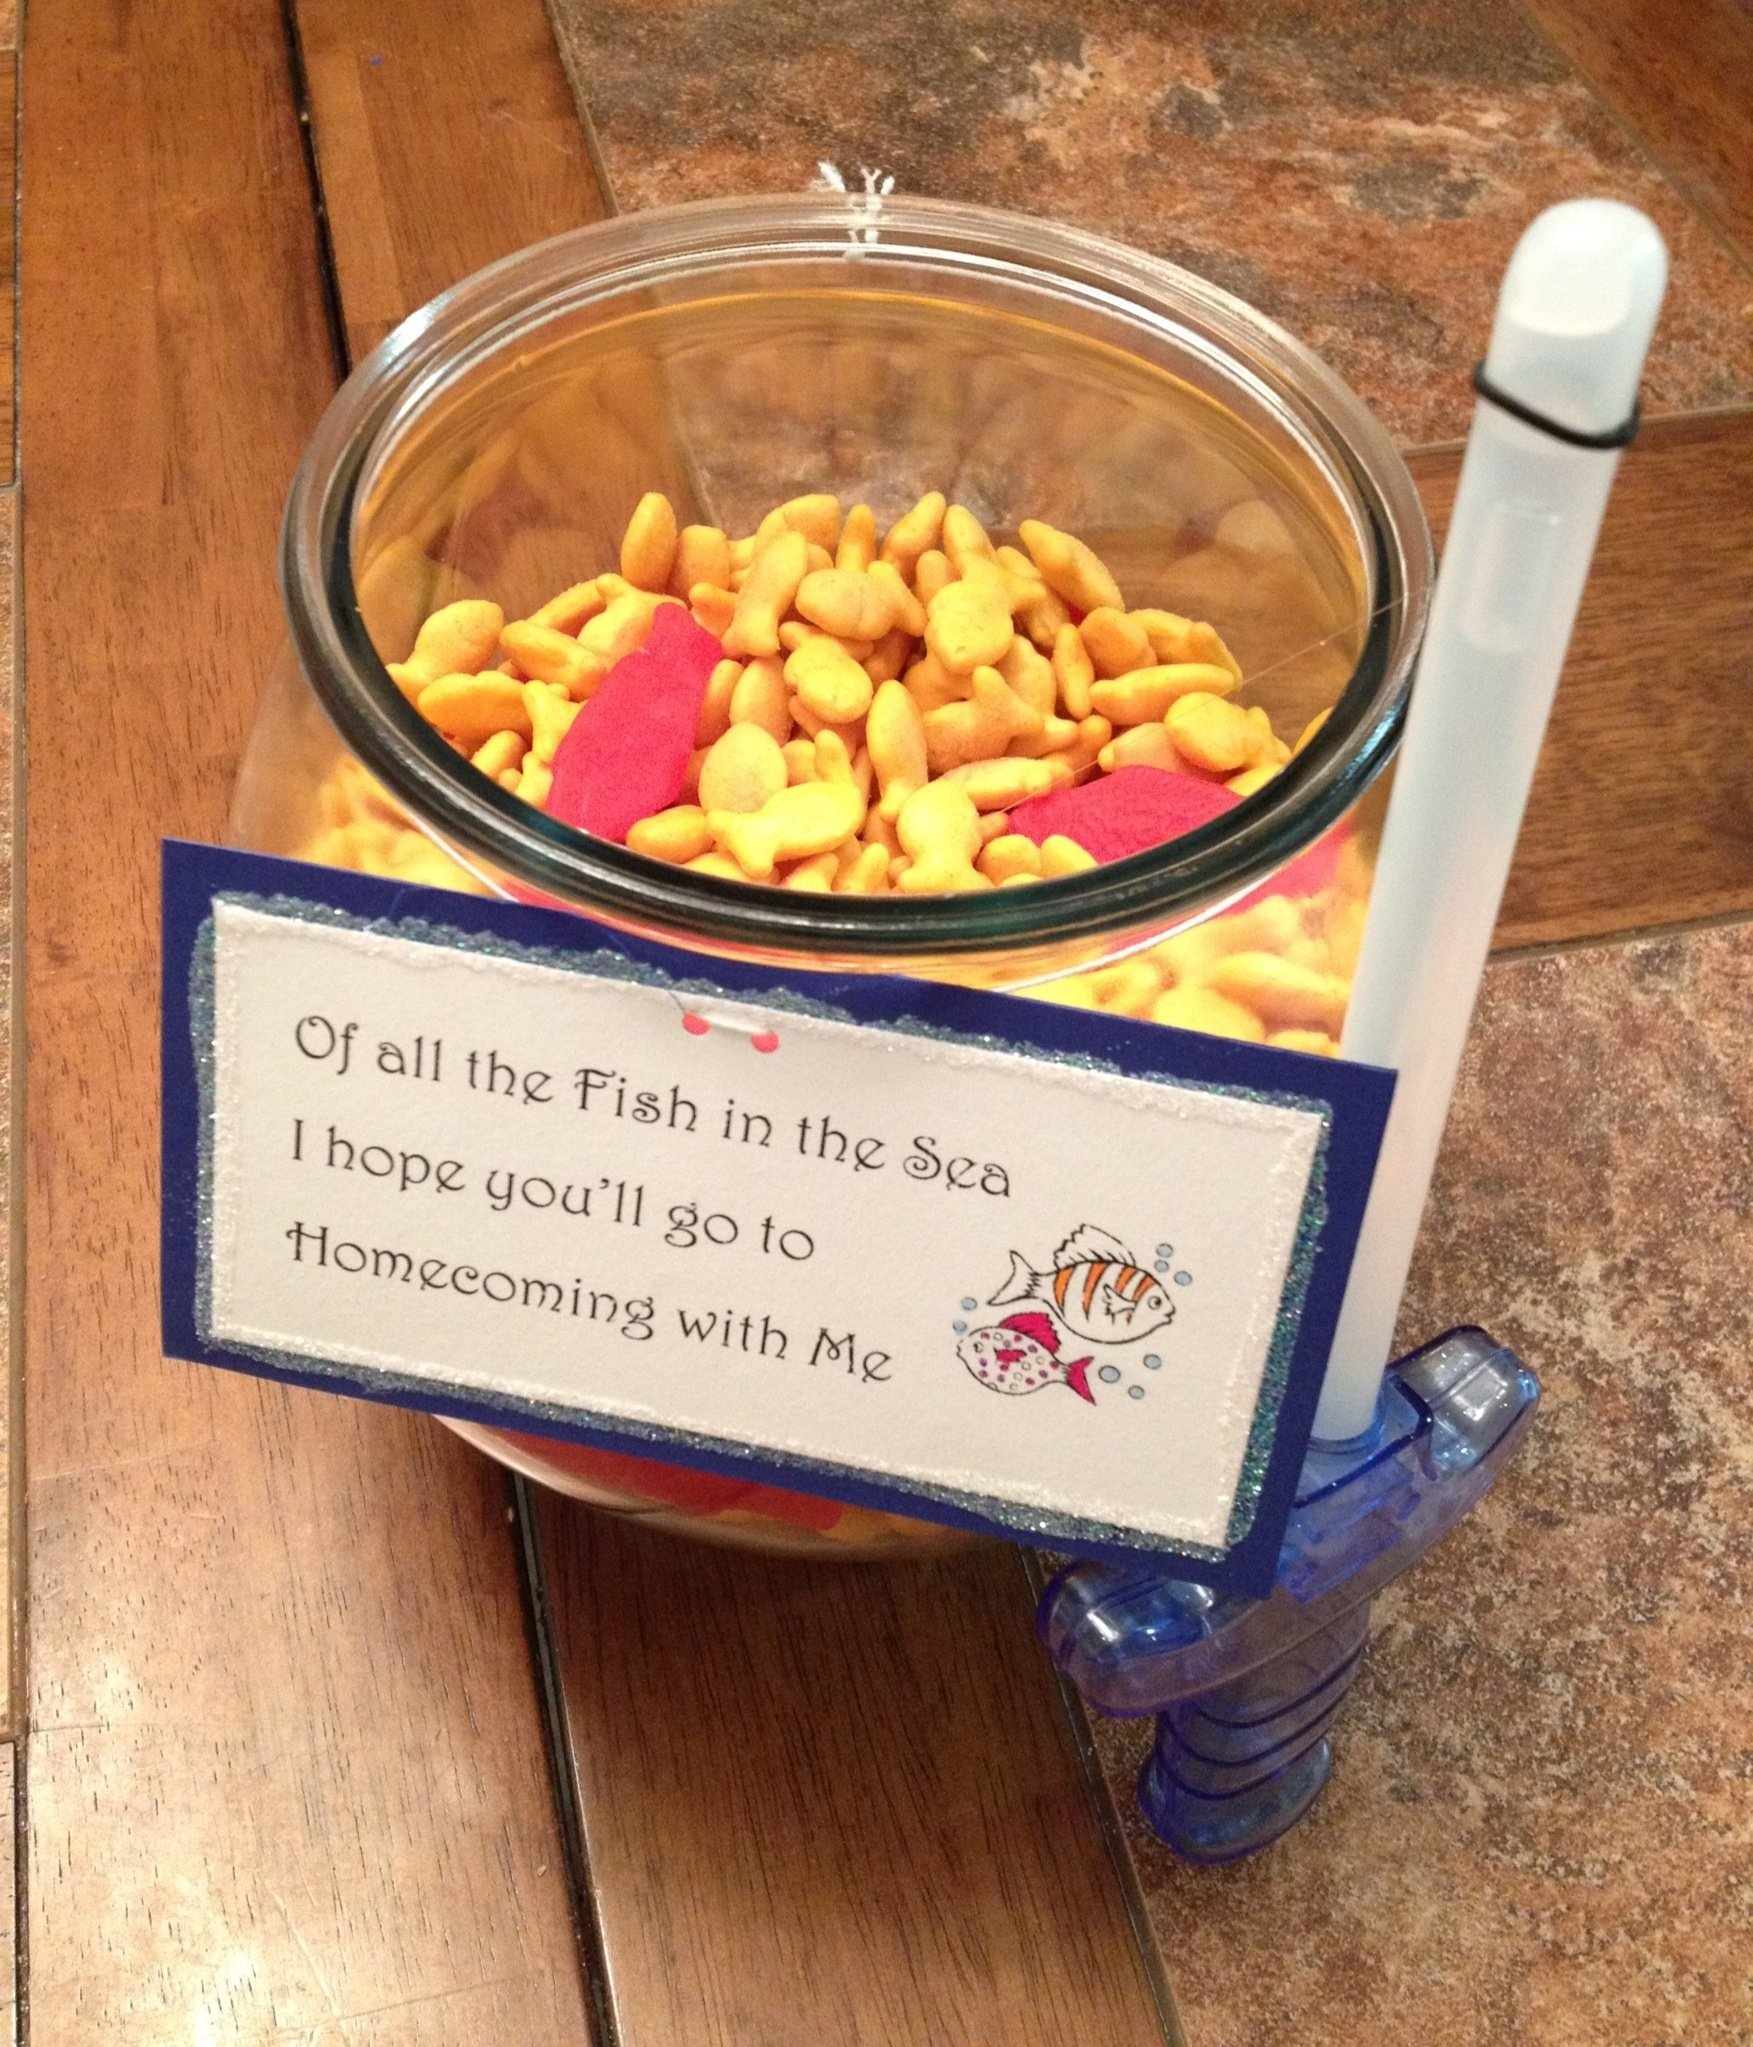 10 Nice Prom Ideas To Ask A Girl another idea for asking a girl to homecoming prom the fishbowl is 14 2021